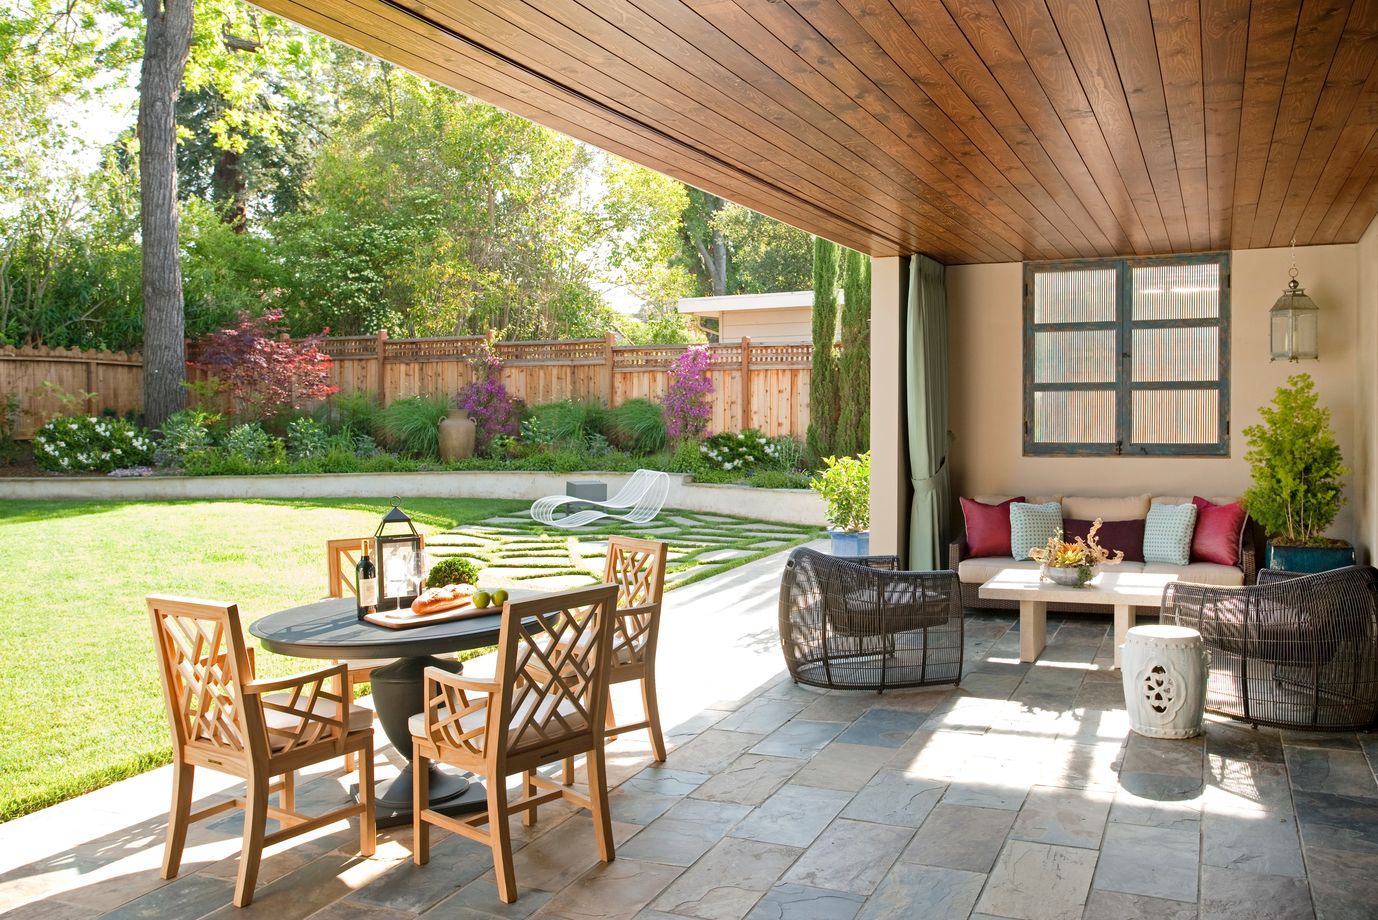 Outdoor living 8 ideas to get the most out of your space for Redesign the outside of your home